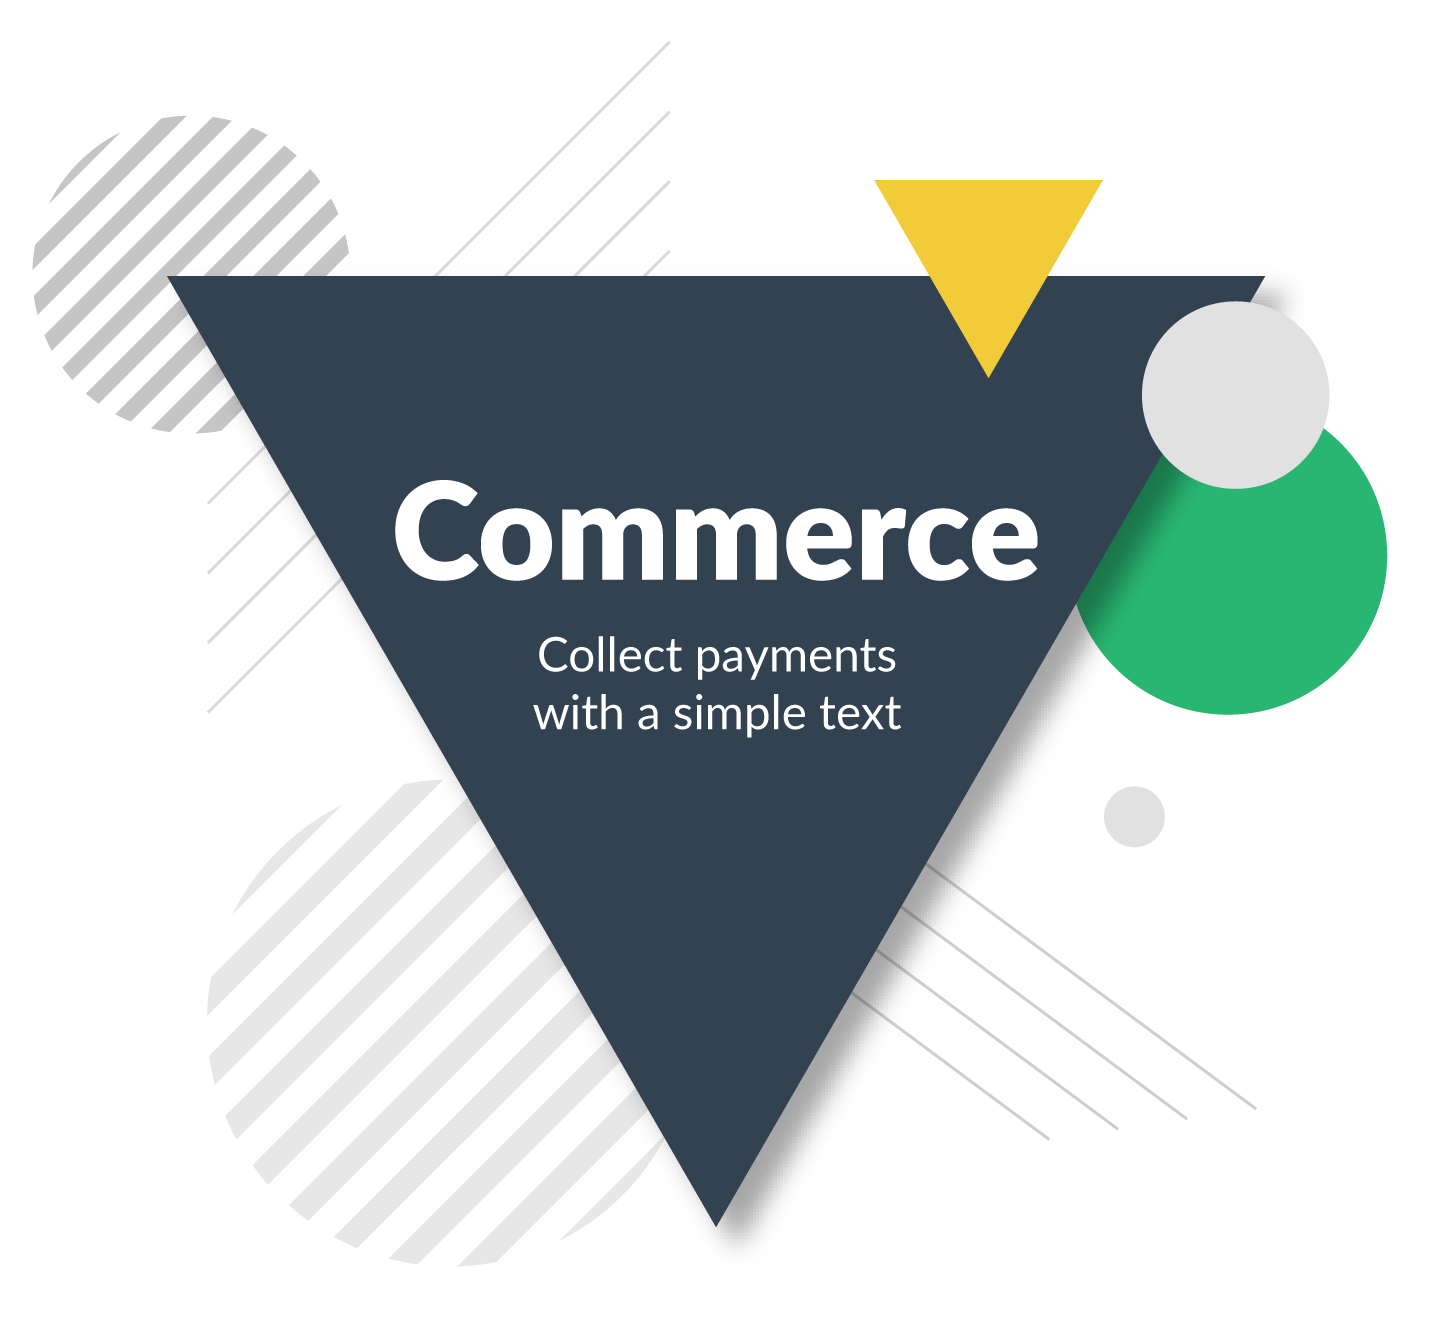 Commerce Graphic